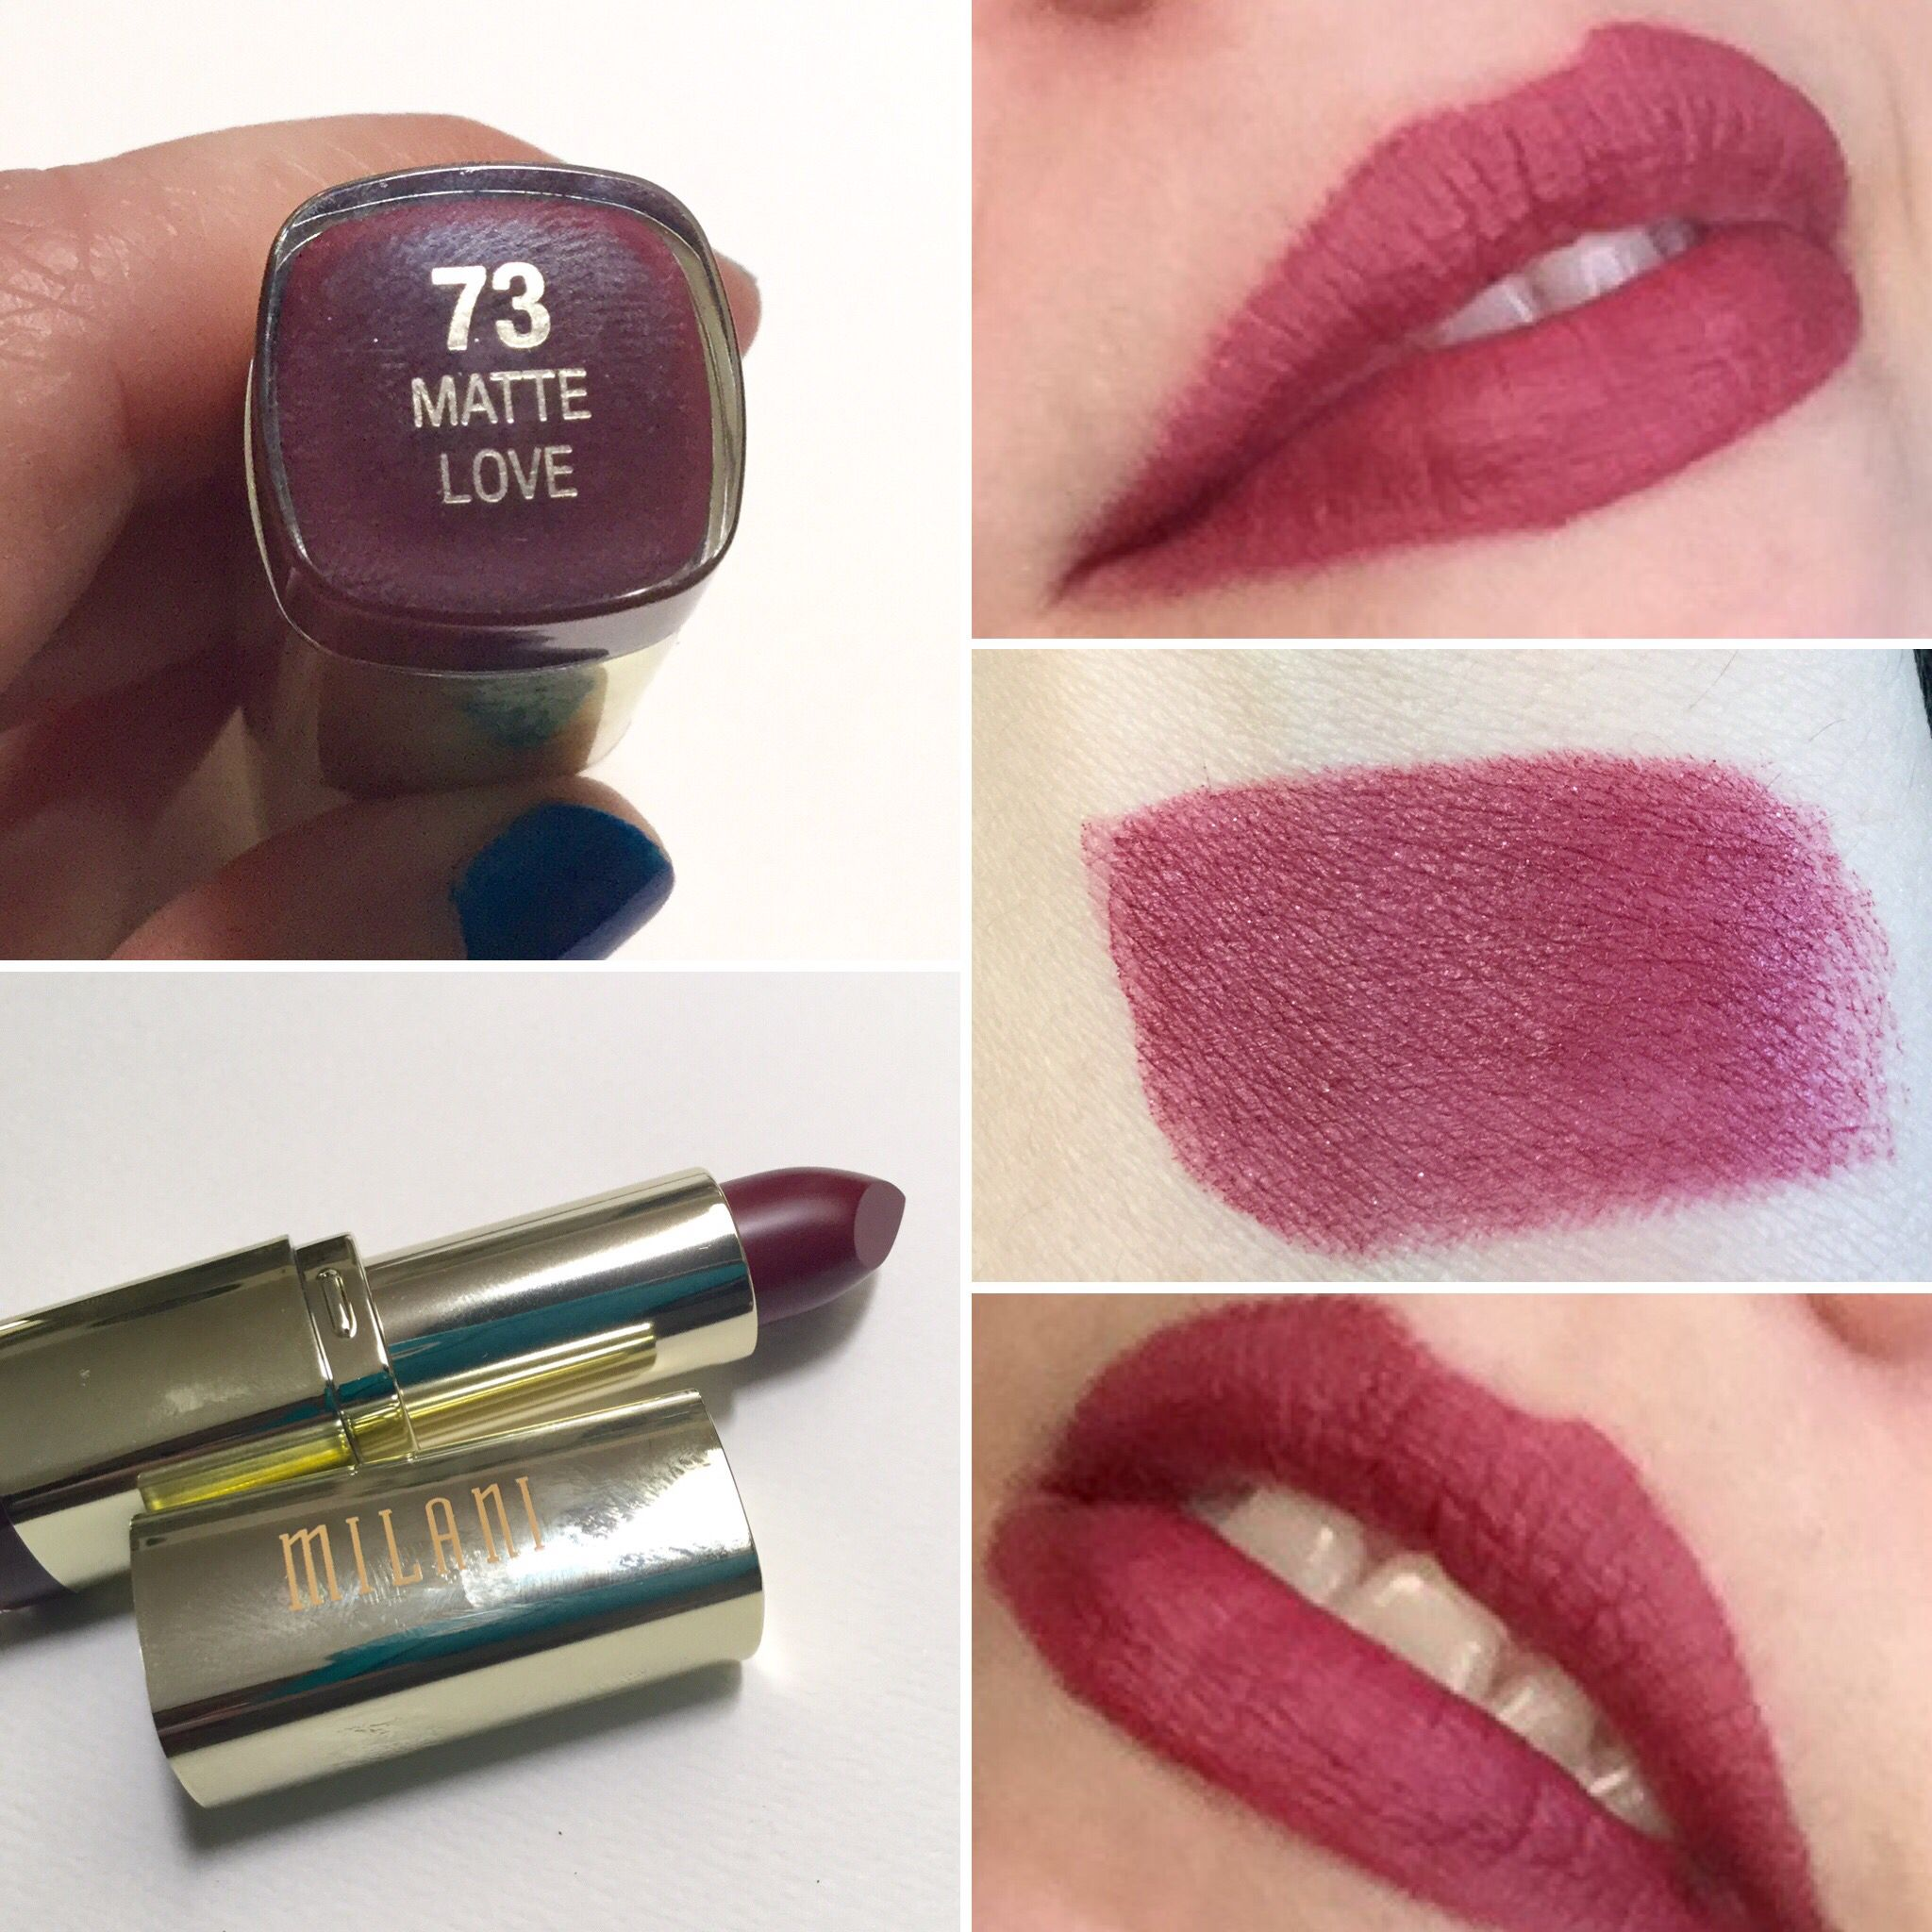 Milani Matte Love lipstick. So patchy! | My Lipstick Swatches ...